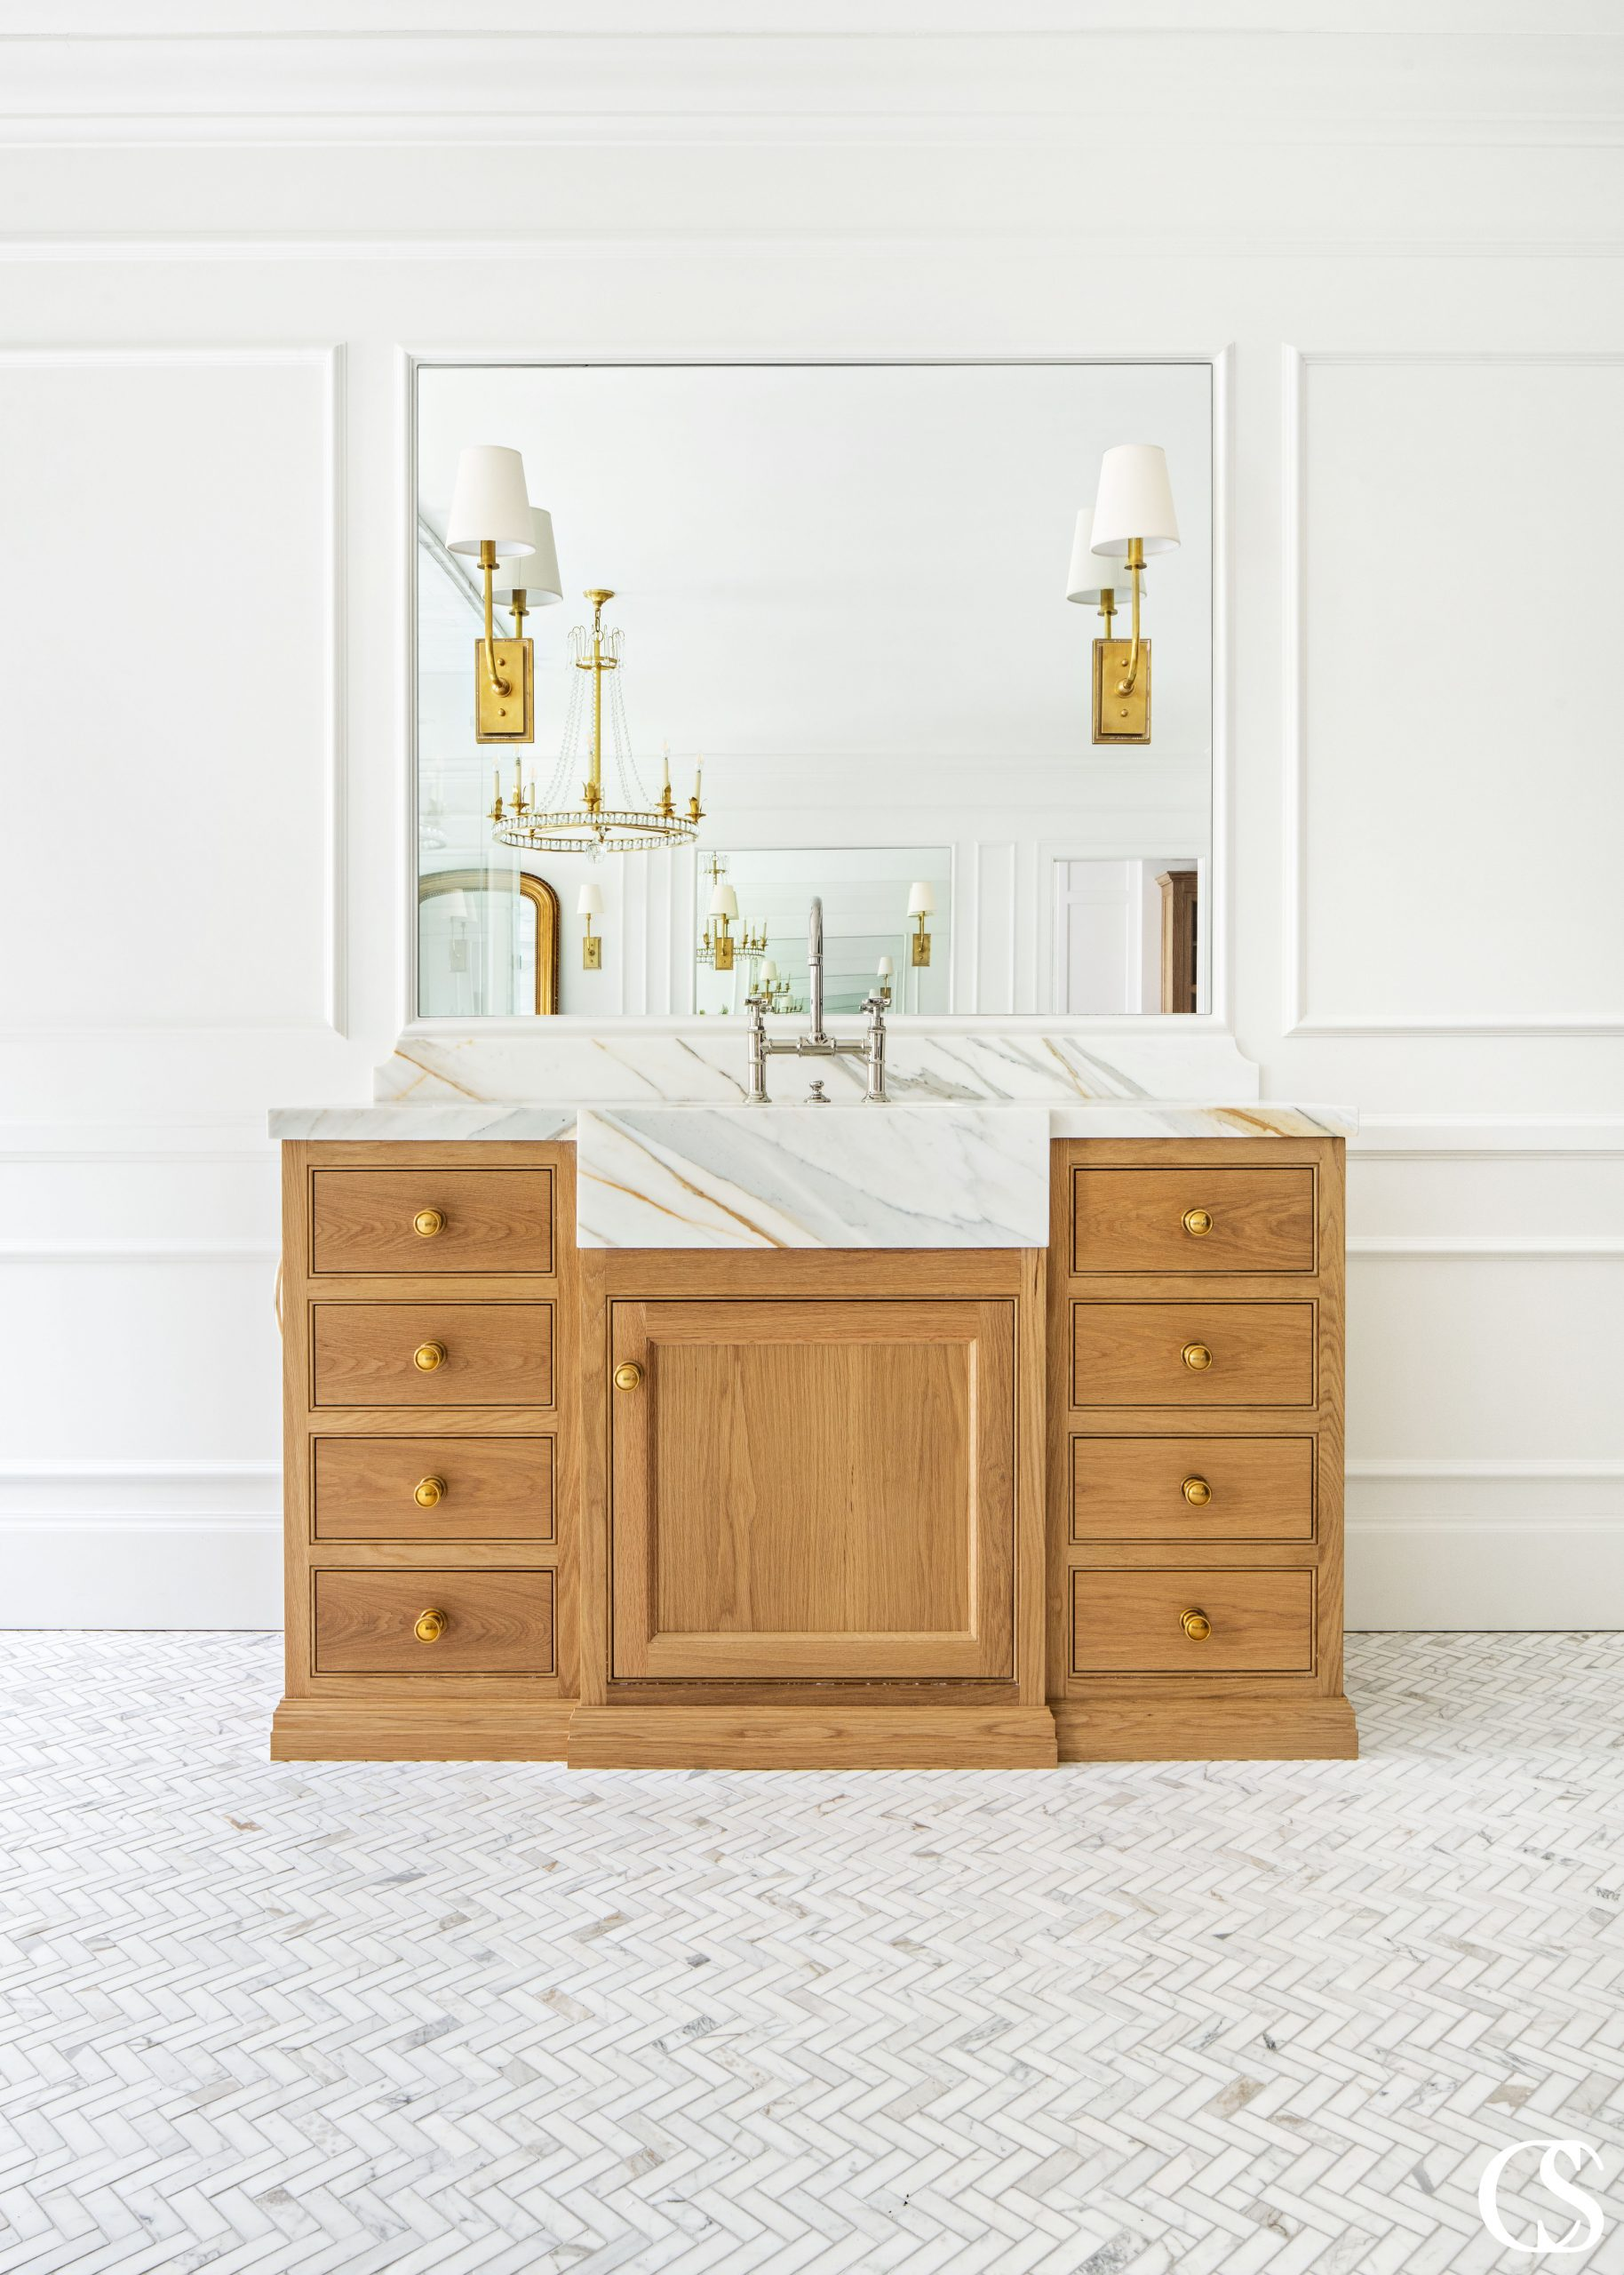 The many design ideas for this cabinet included a marble front sink extending from the countertop to really make a natural statement.